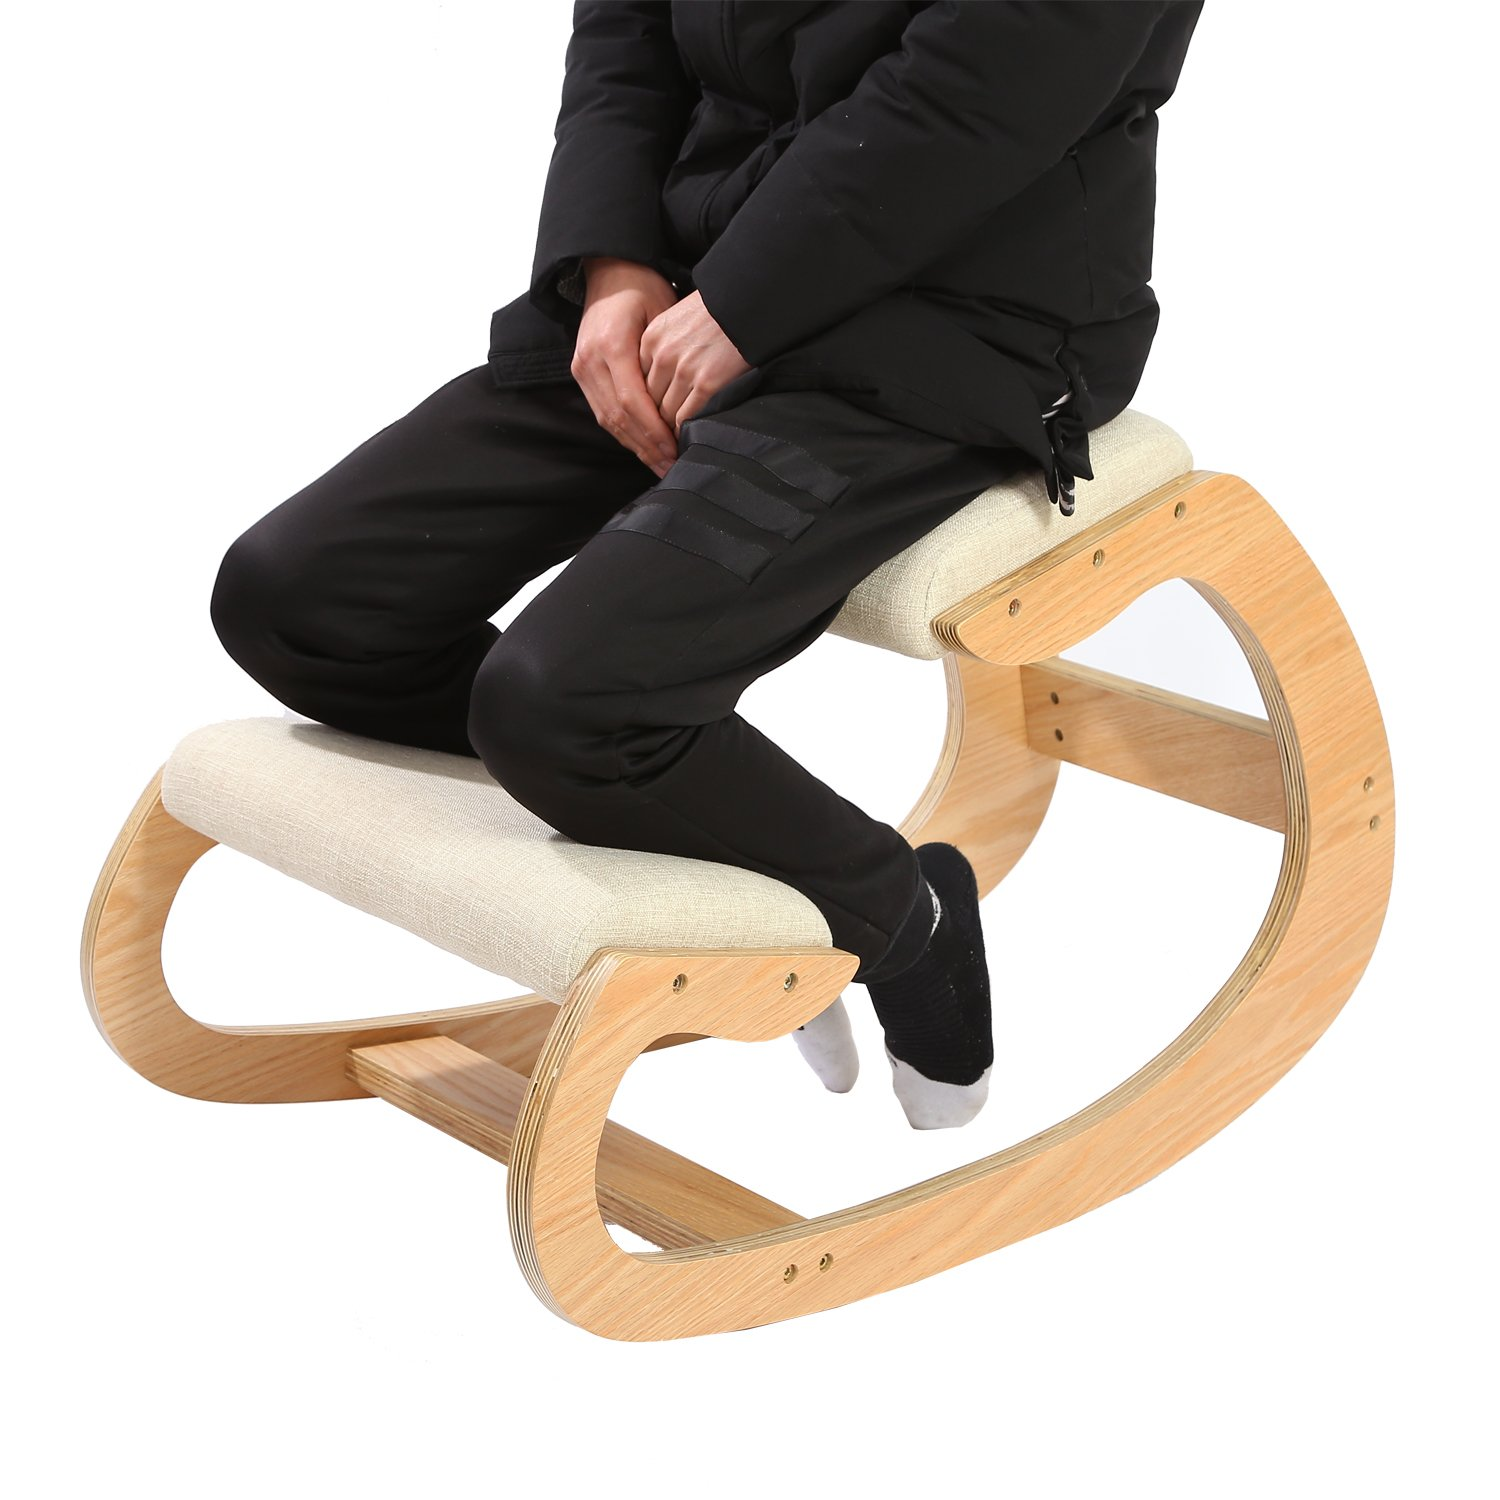 Ergonomic Kneeling Chair Upright Posture - Rocking Chair Knee Stool Home, Office & Meditation - Wood & Linen Cushion - Relieving Back Neck Pain & Improving Posture (Pecan) MallBoo